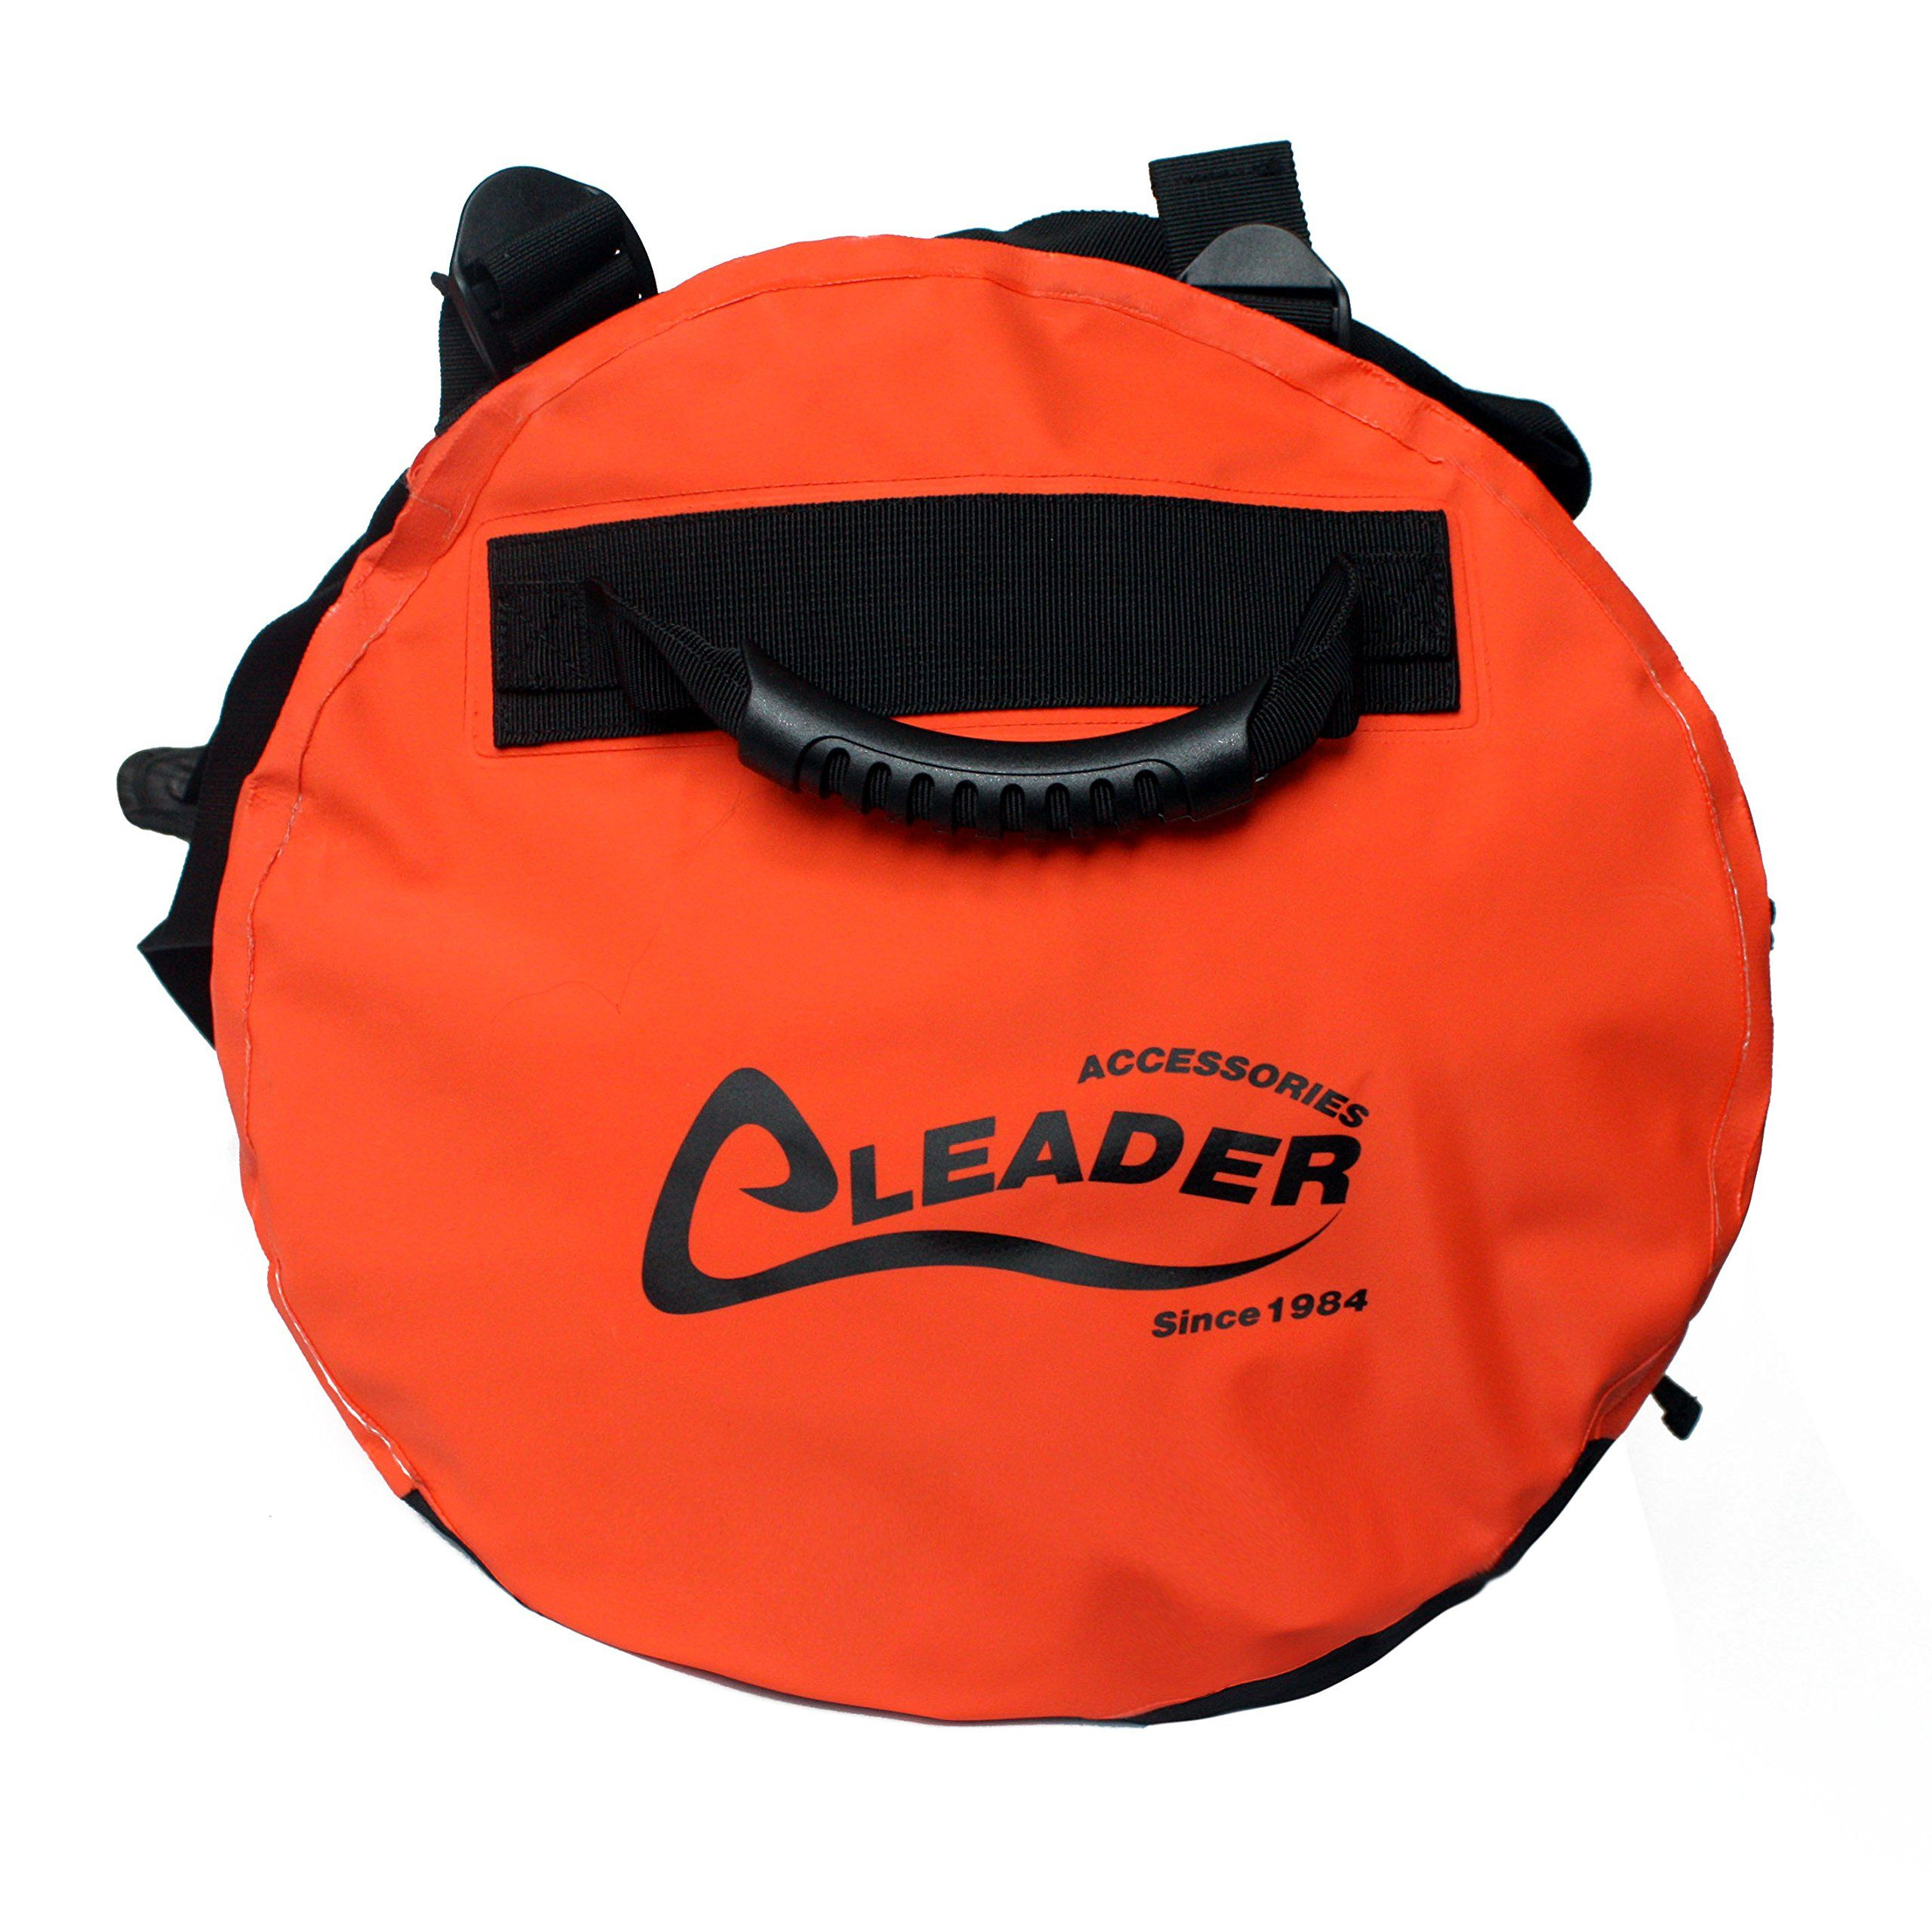 Canoe Gear    Leader Accessories Deluxe Water Resistant PVC Tarpaulin  Duffel Bag Backpack Orange 40L -- See this great product. (This is an  affiliate link). 889c537e6f267